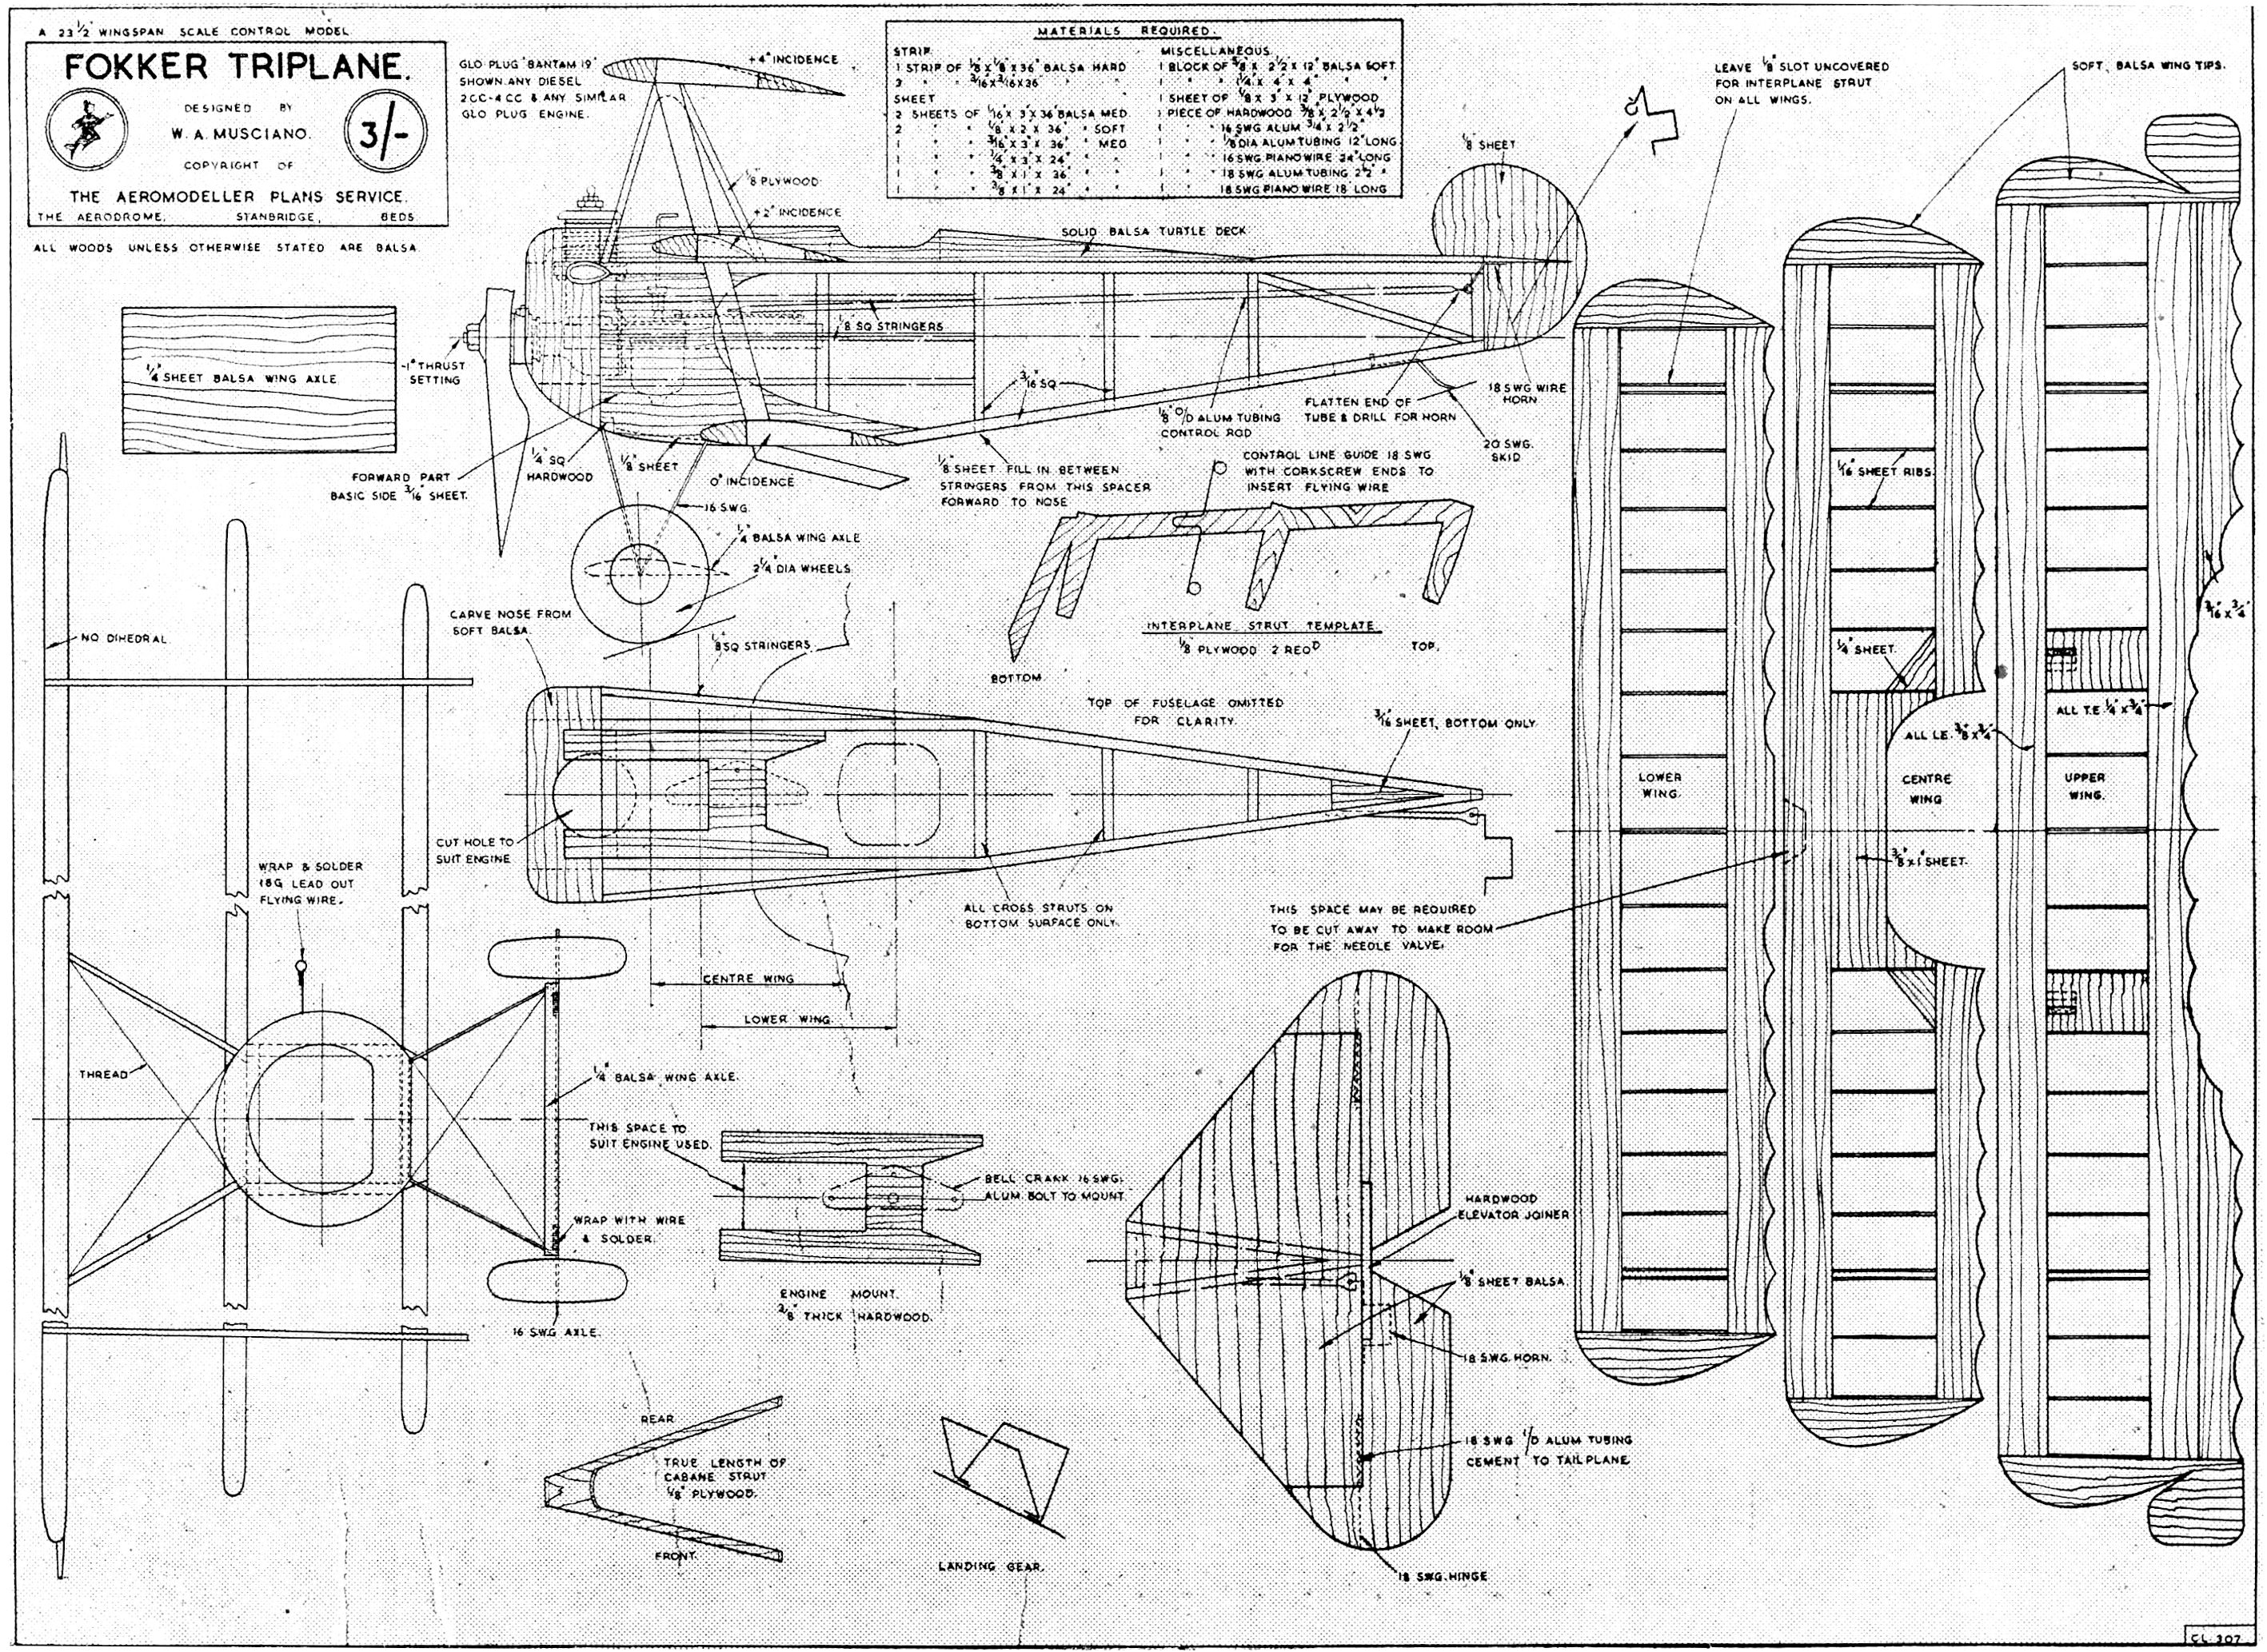 Pin By Erolakca On Model Ucak Rc Plane Plans Airplanes Wiring Diagram Aircraft Drawings Fokker Triplane Balsa Wood Models Scale